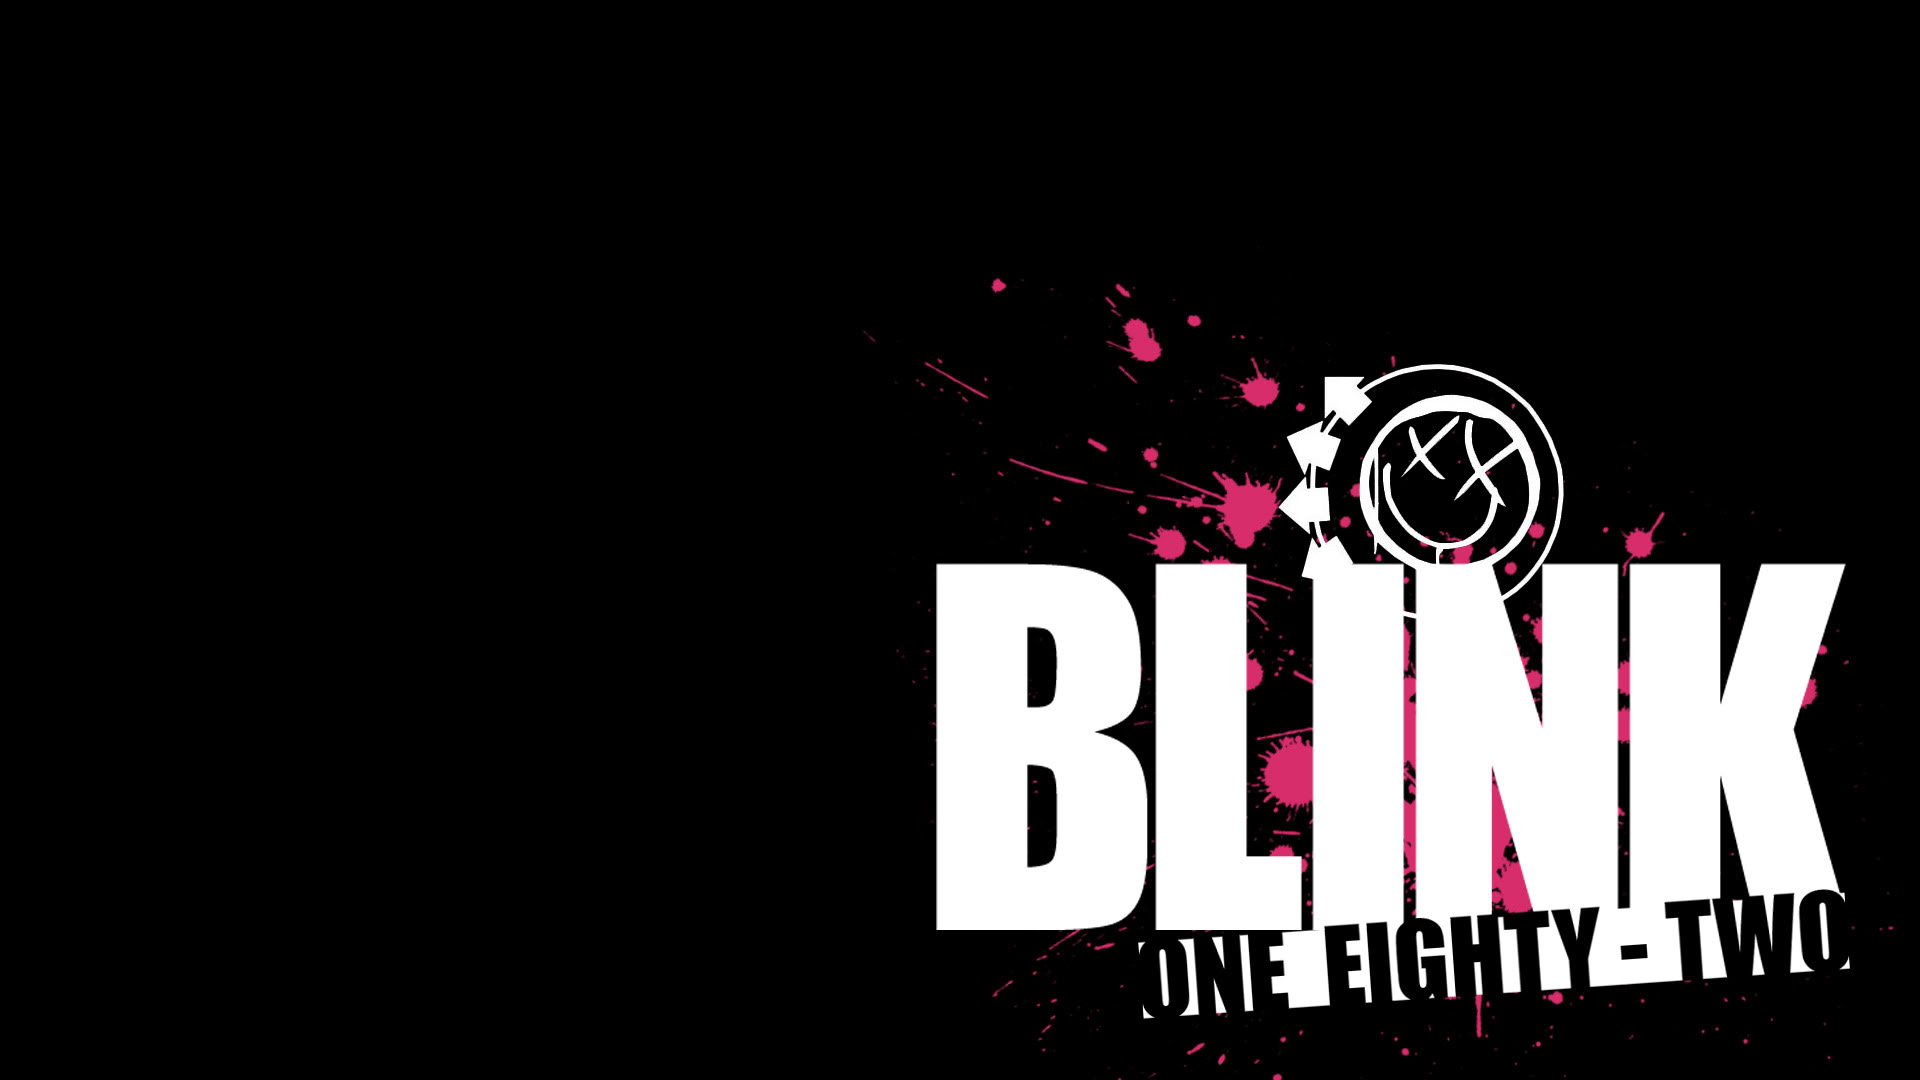 Download Blink 182 14903 1920x1080 px High Resolution ...